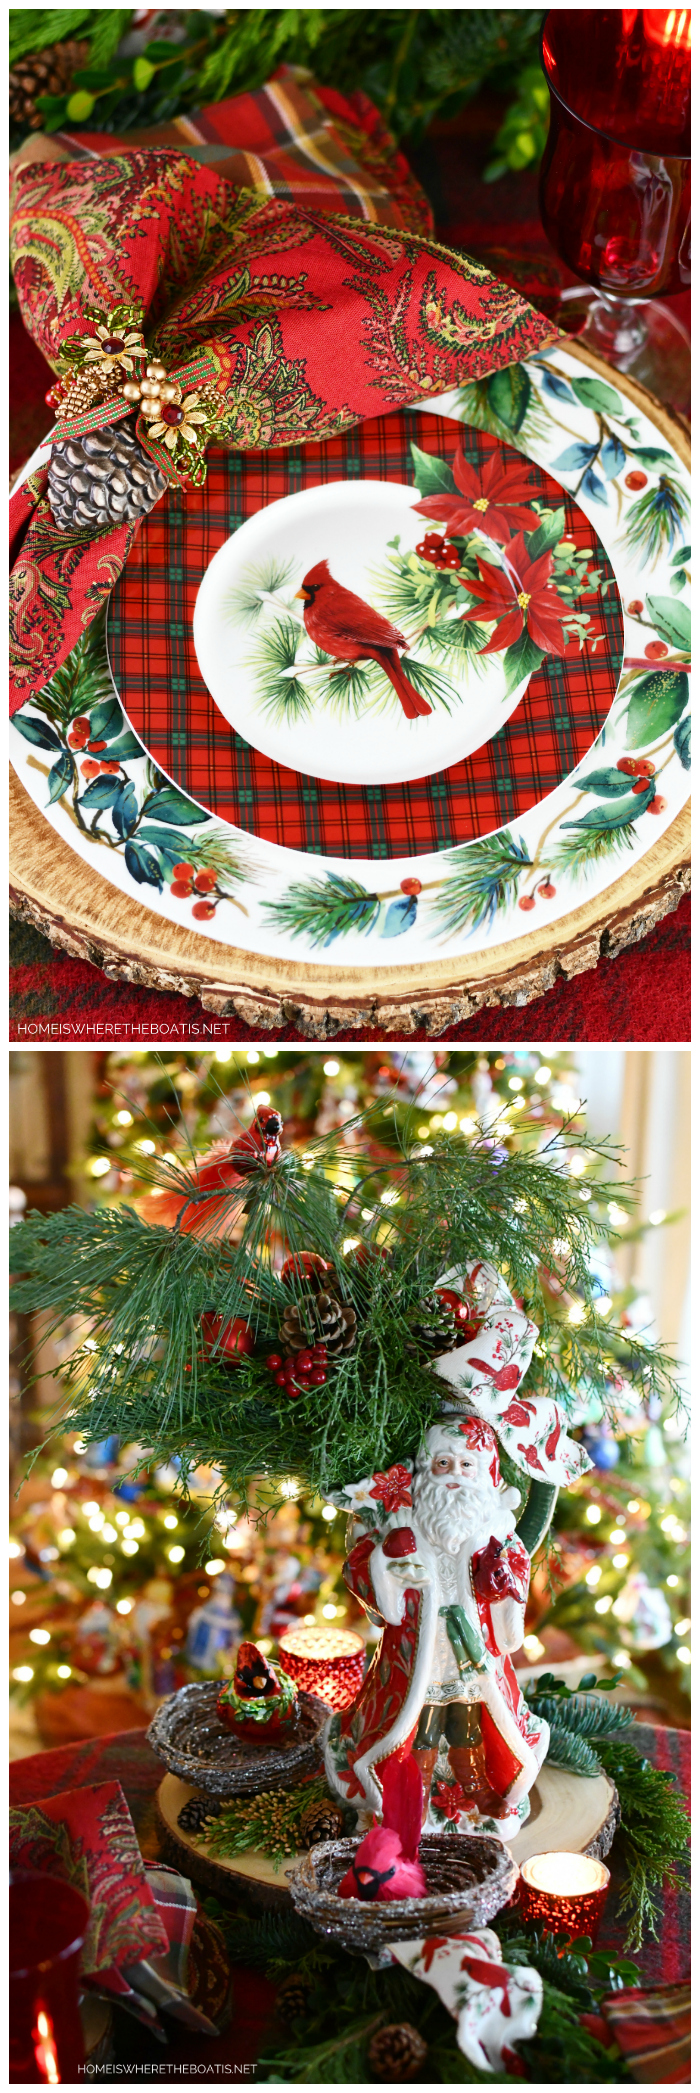 Cardinal Christmas Santa tablescape with greenery, pine cones and Cardinal ornaments | ©homeiswheretheboatis.net #Christmas #tablescapes #Santa #birds #tartan #plaid